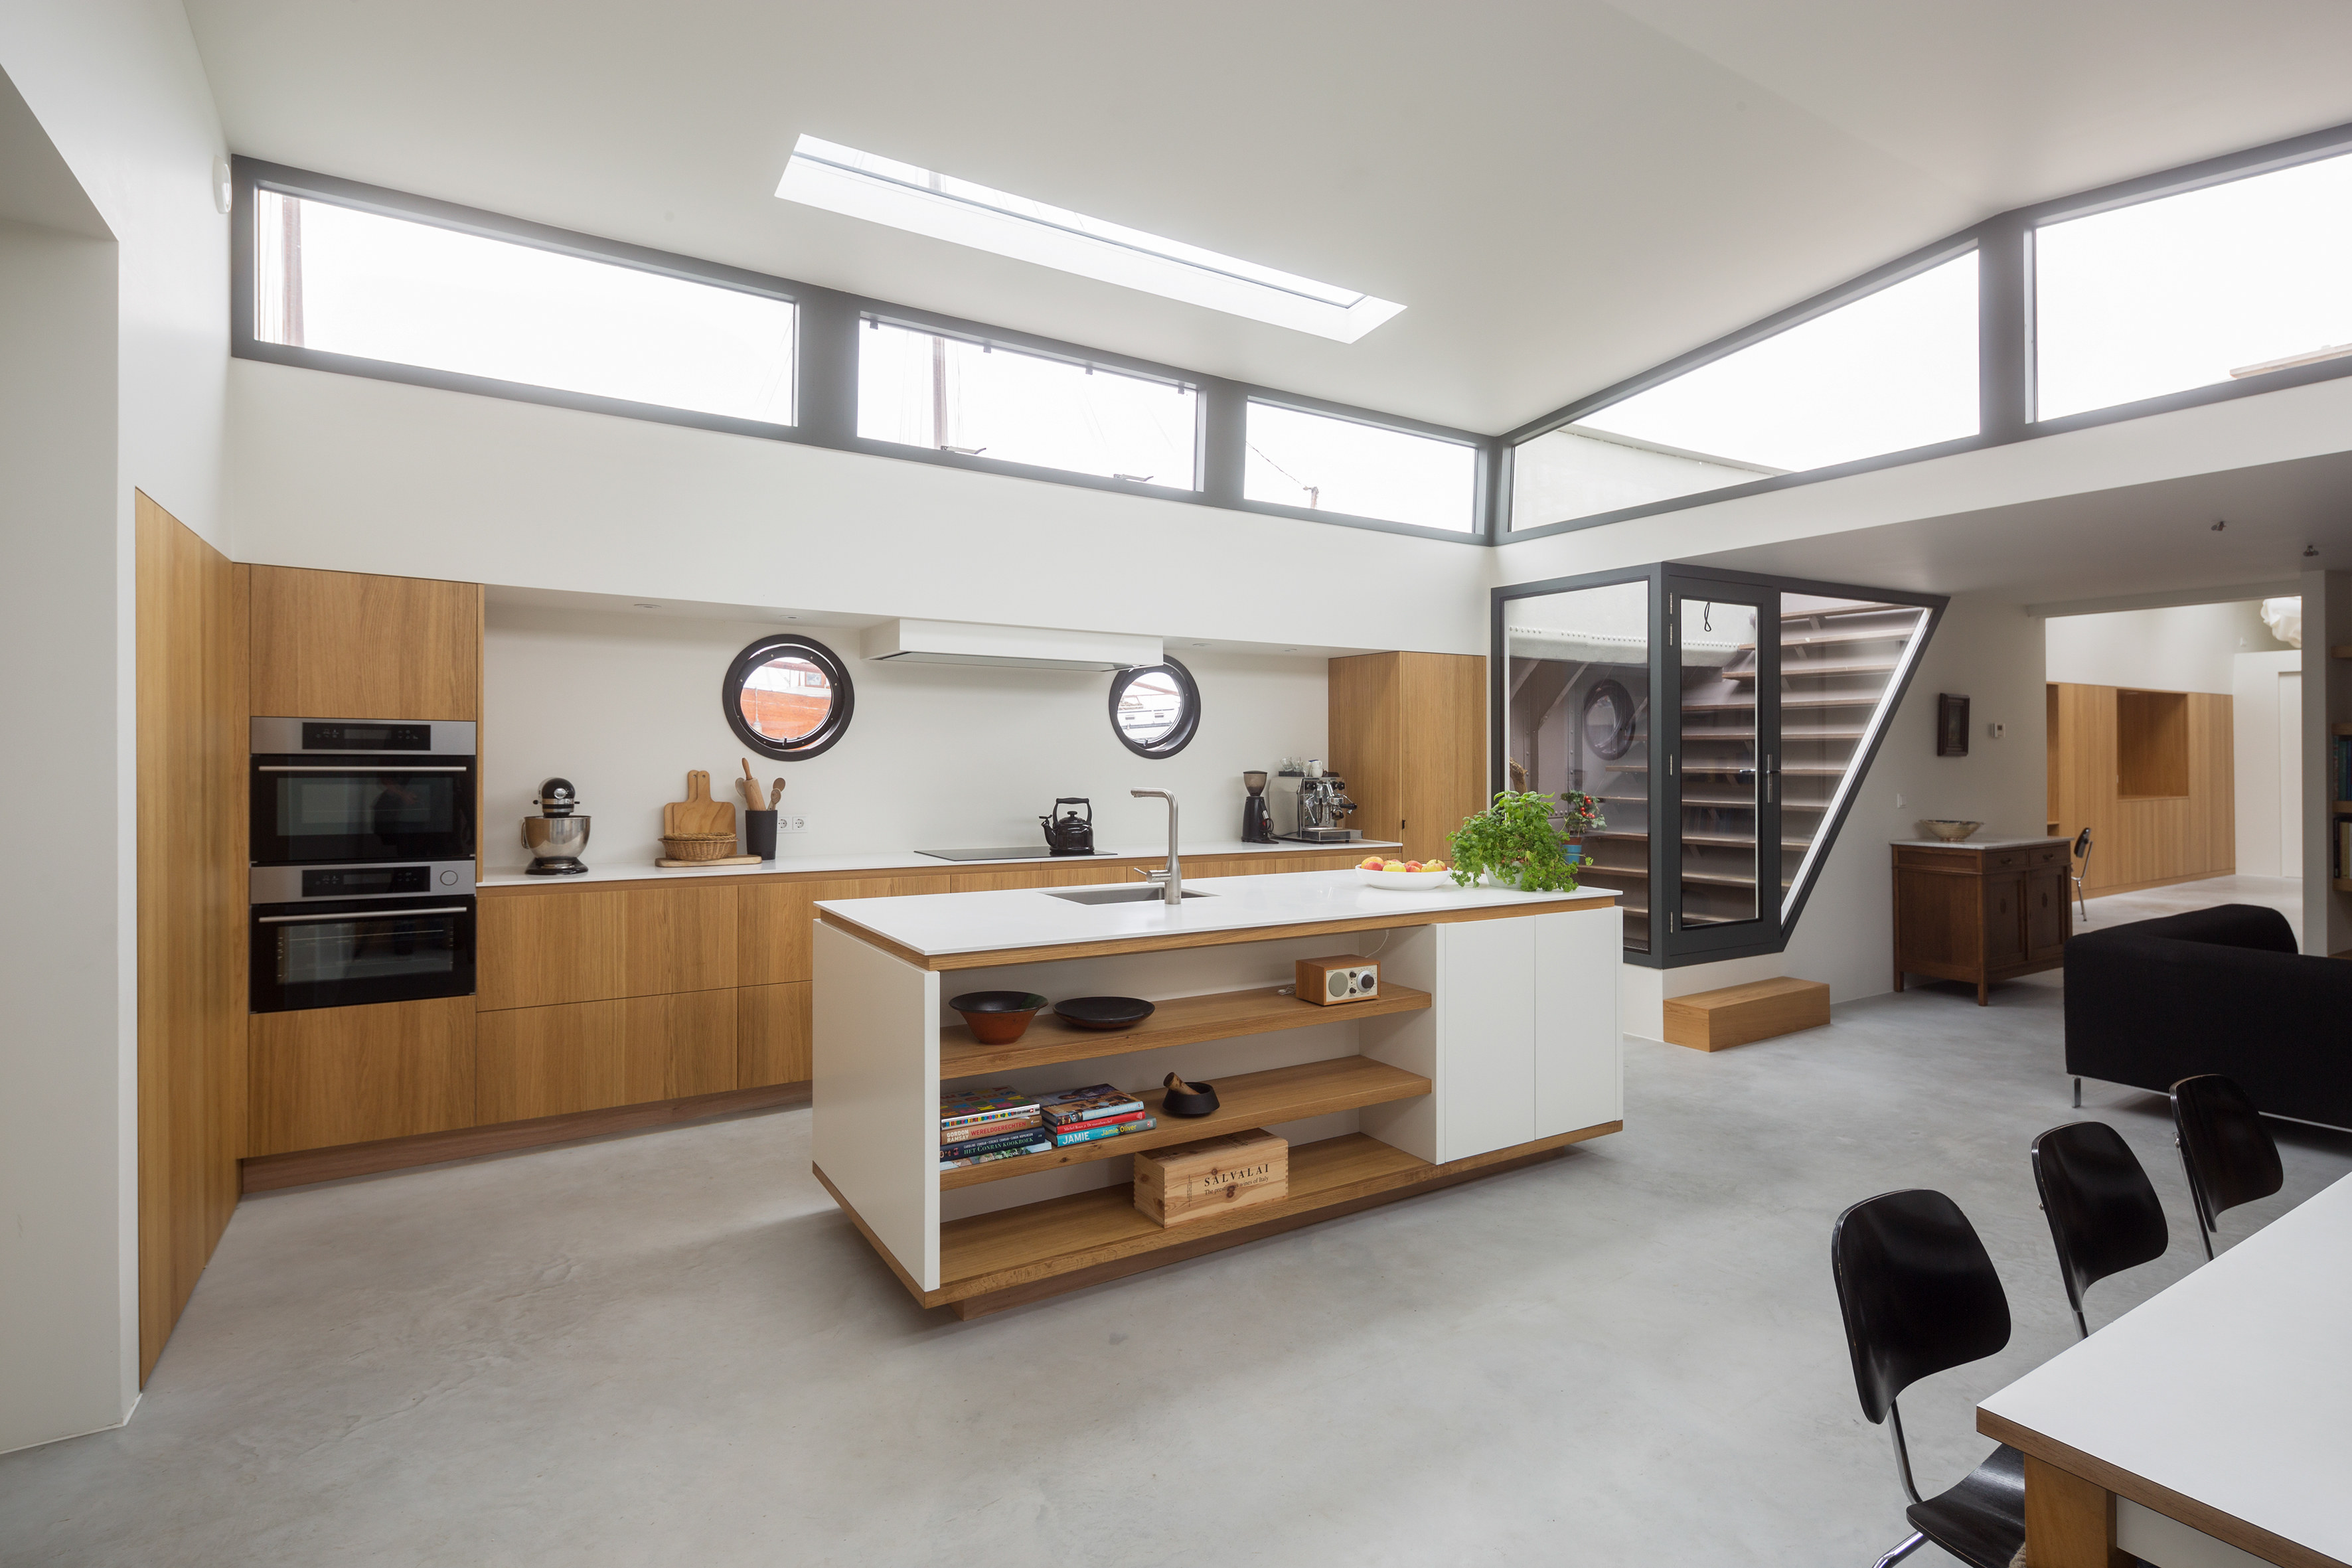 Kitchen and dining room area of the luxury houseboat